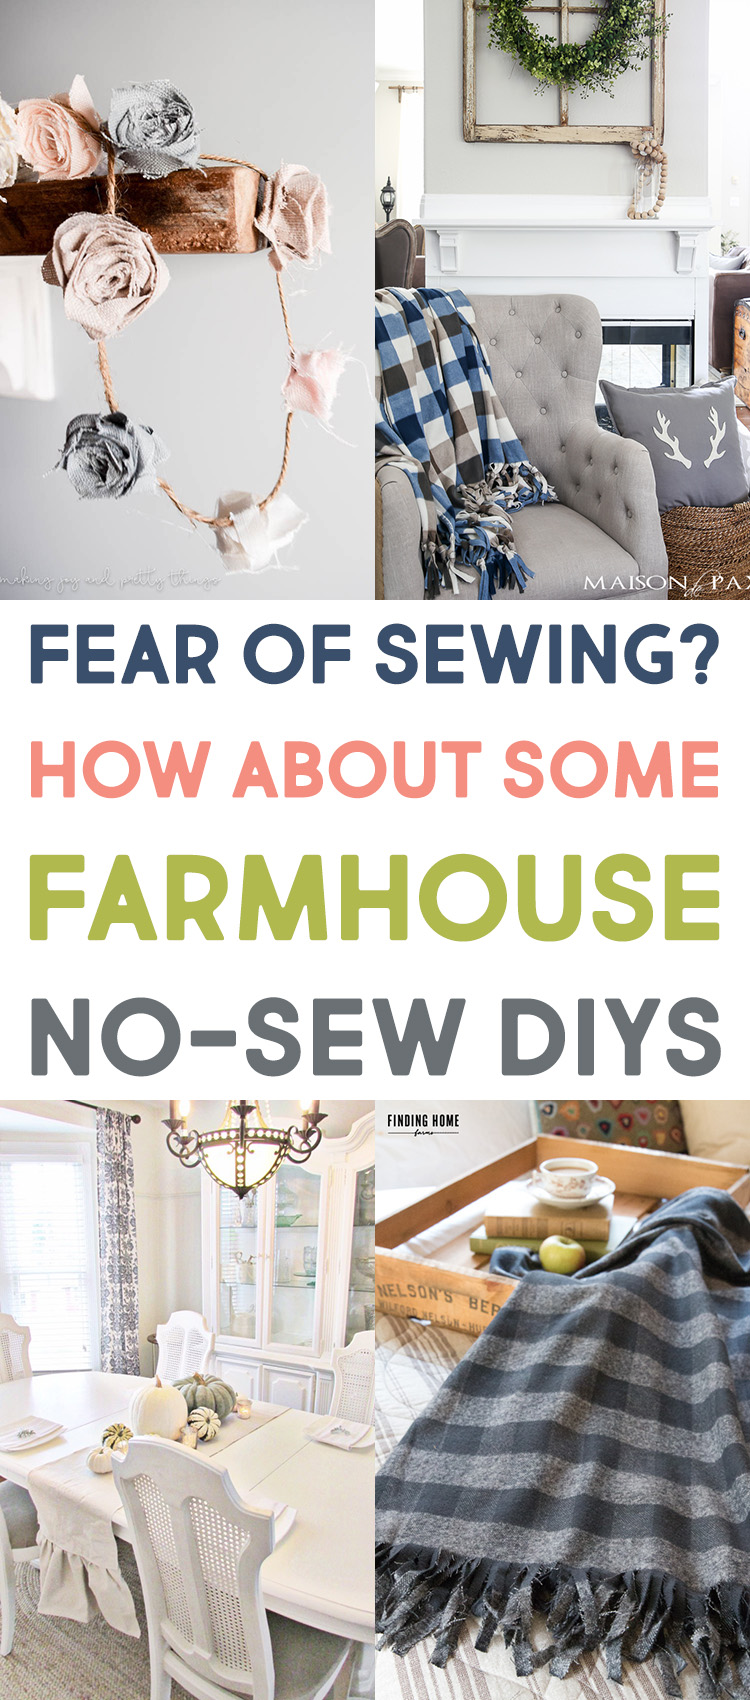 Fear of Sewing? How About Some Farmhouse No-Sew DIYs